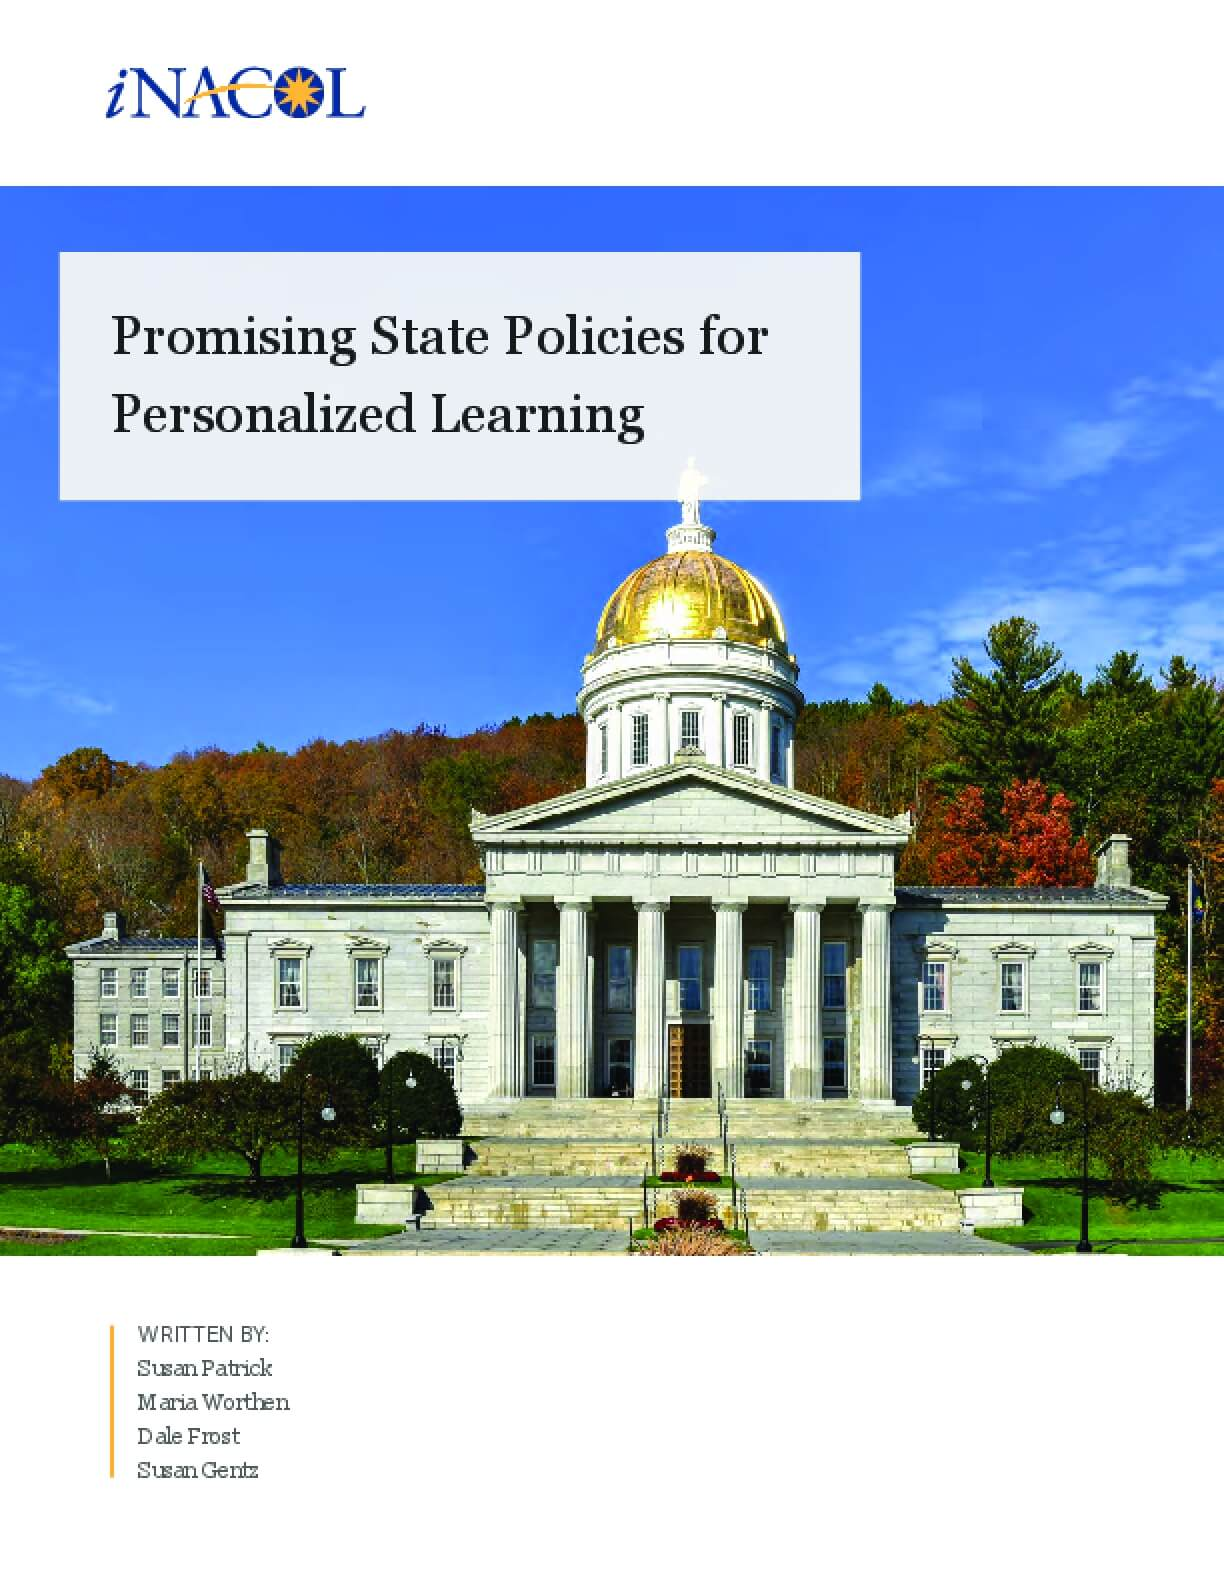 Promising State Policies for Personalized Learning